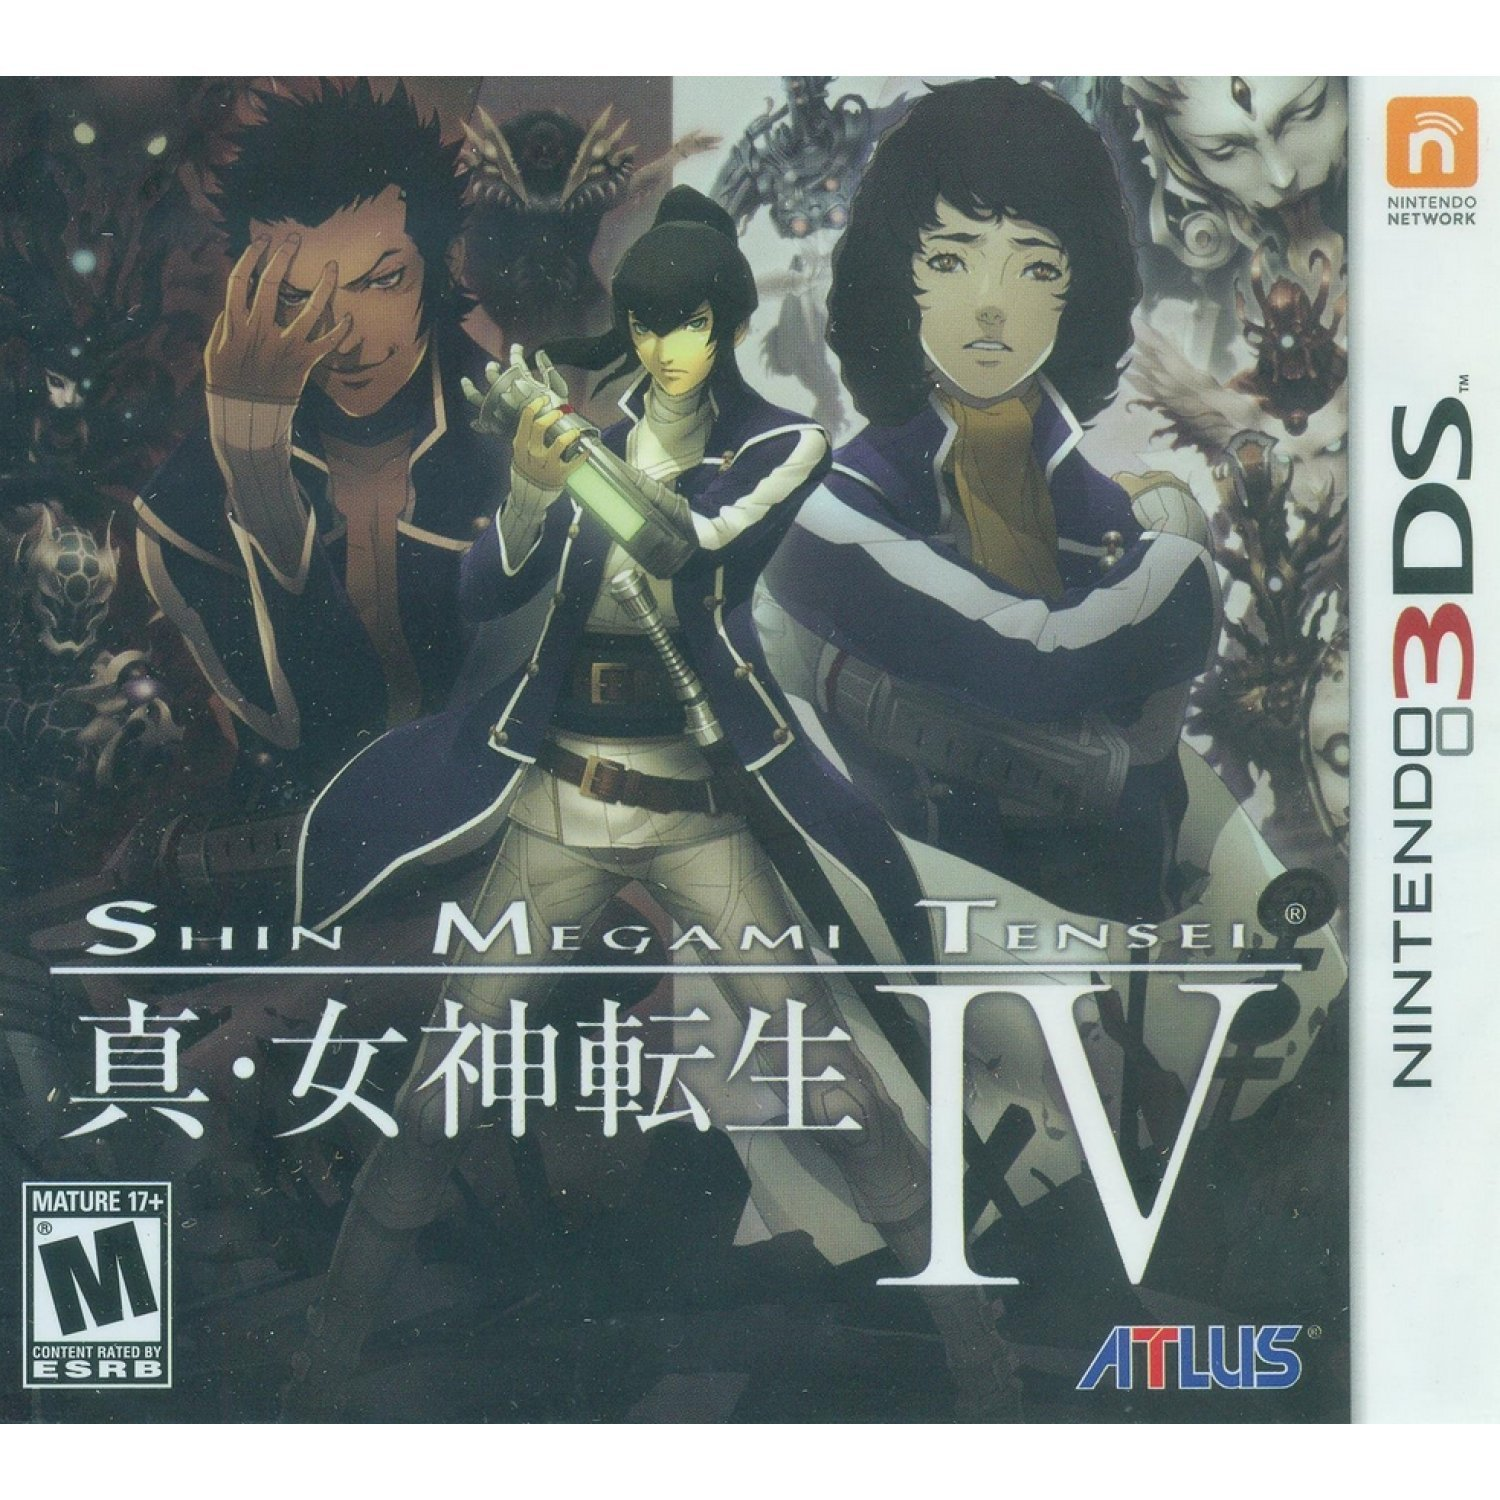 Weekly Special Shin Megami Tensei Iv Skate 3 Super Mario Galaxy 2 Game Kaset Nintendo Wii New Bros Monster Hunter Ultimate Sly Cooper Thieves In Time Dragons Crown Ps3